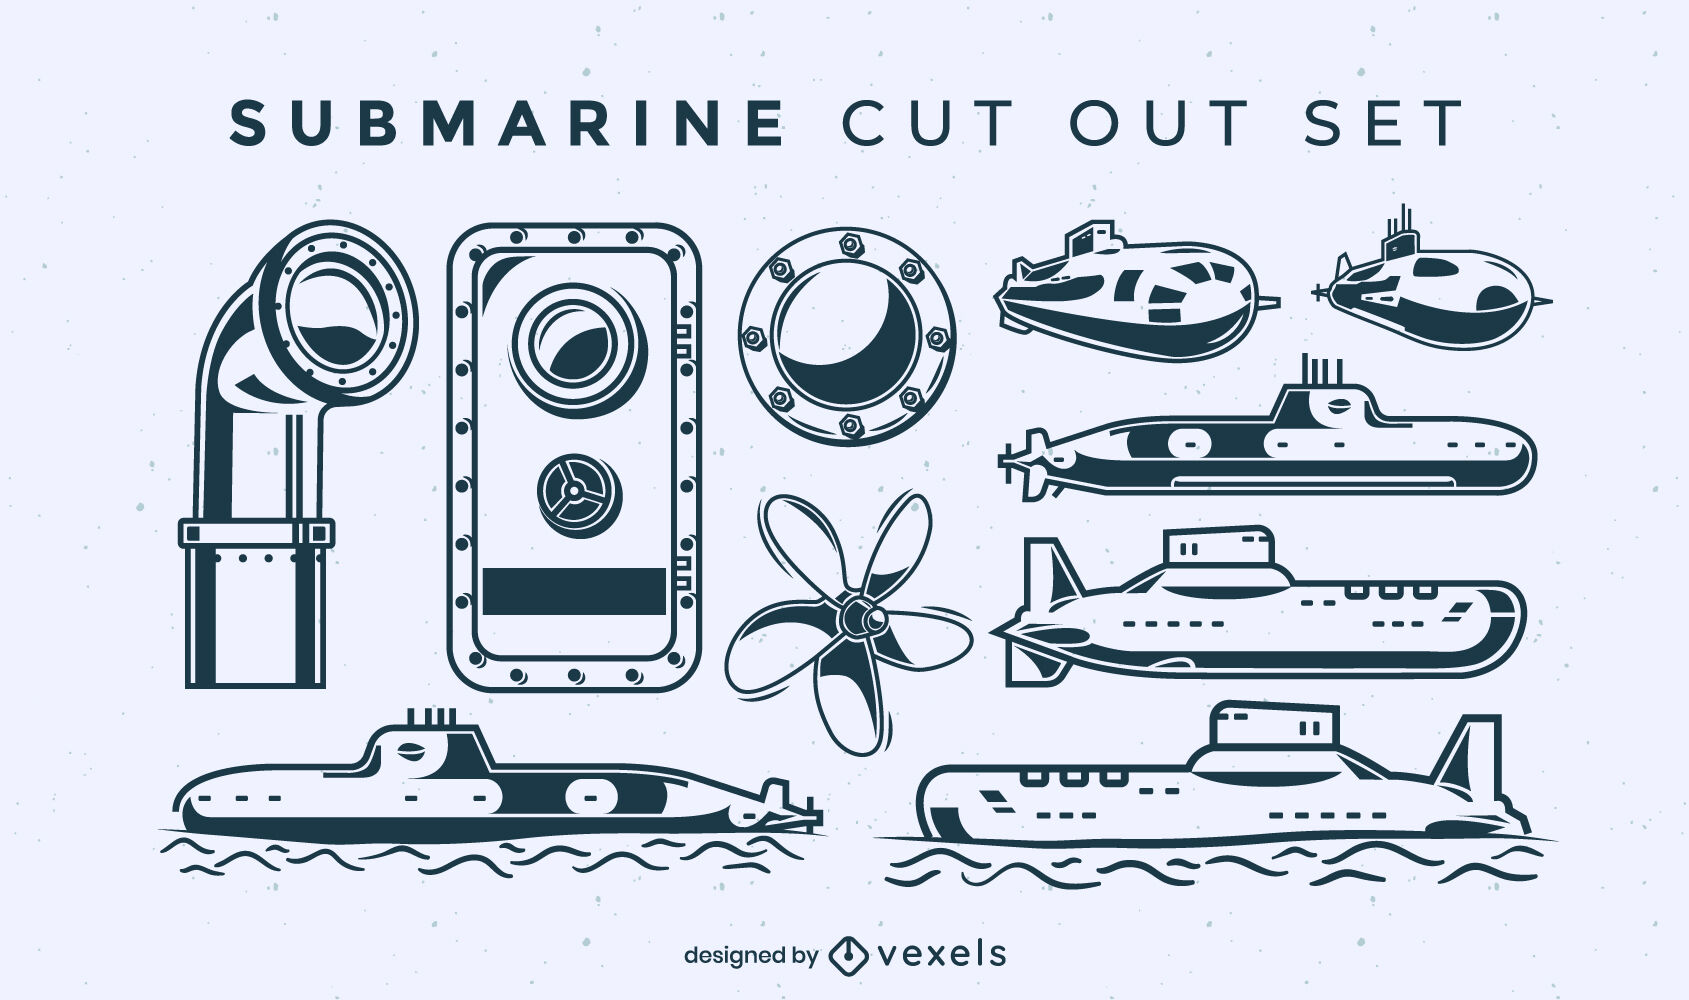 Submarine set of cut out elements